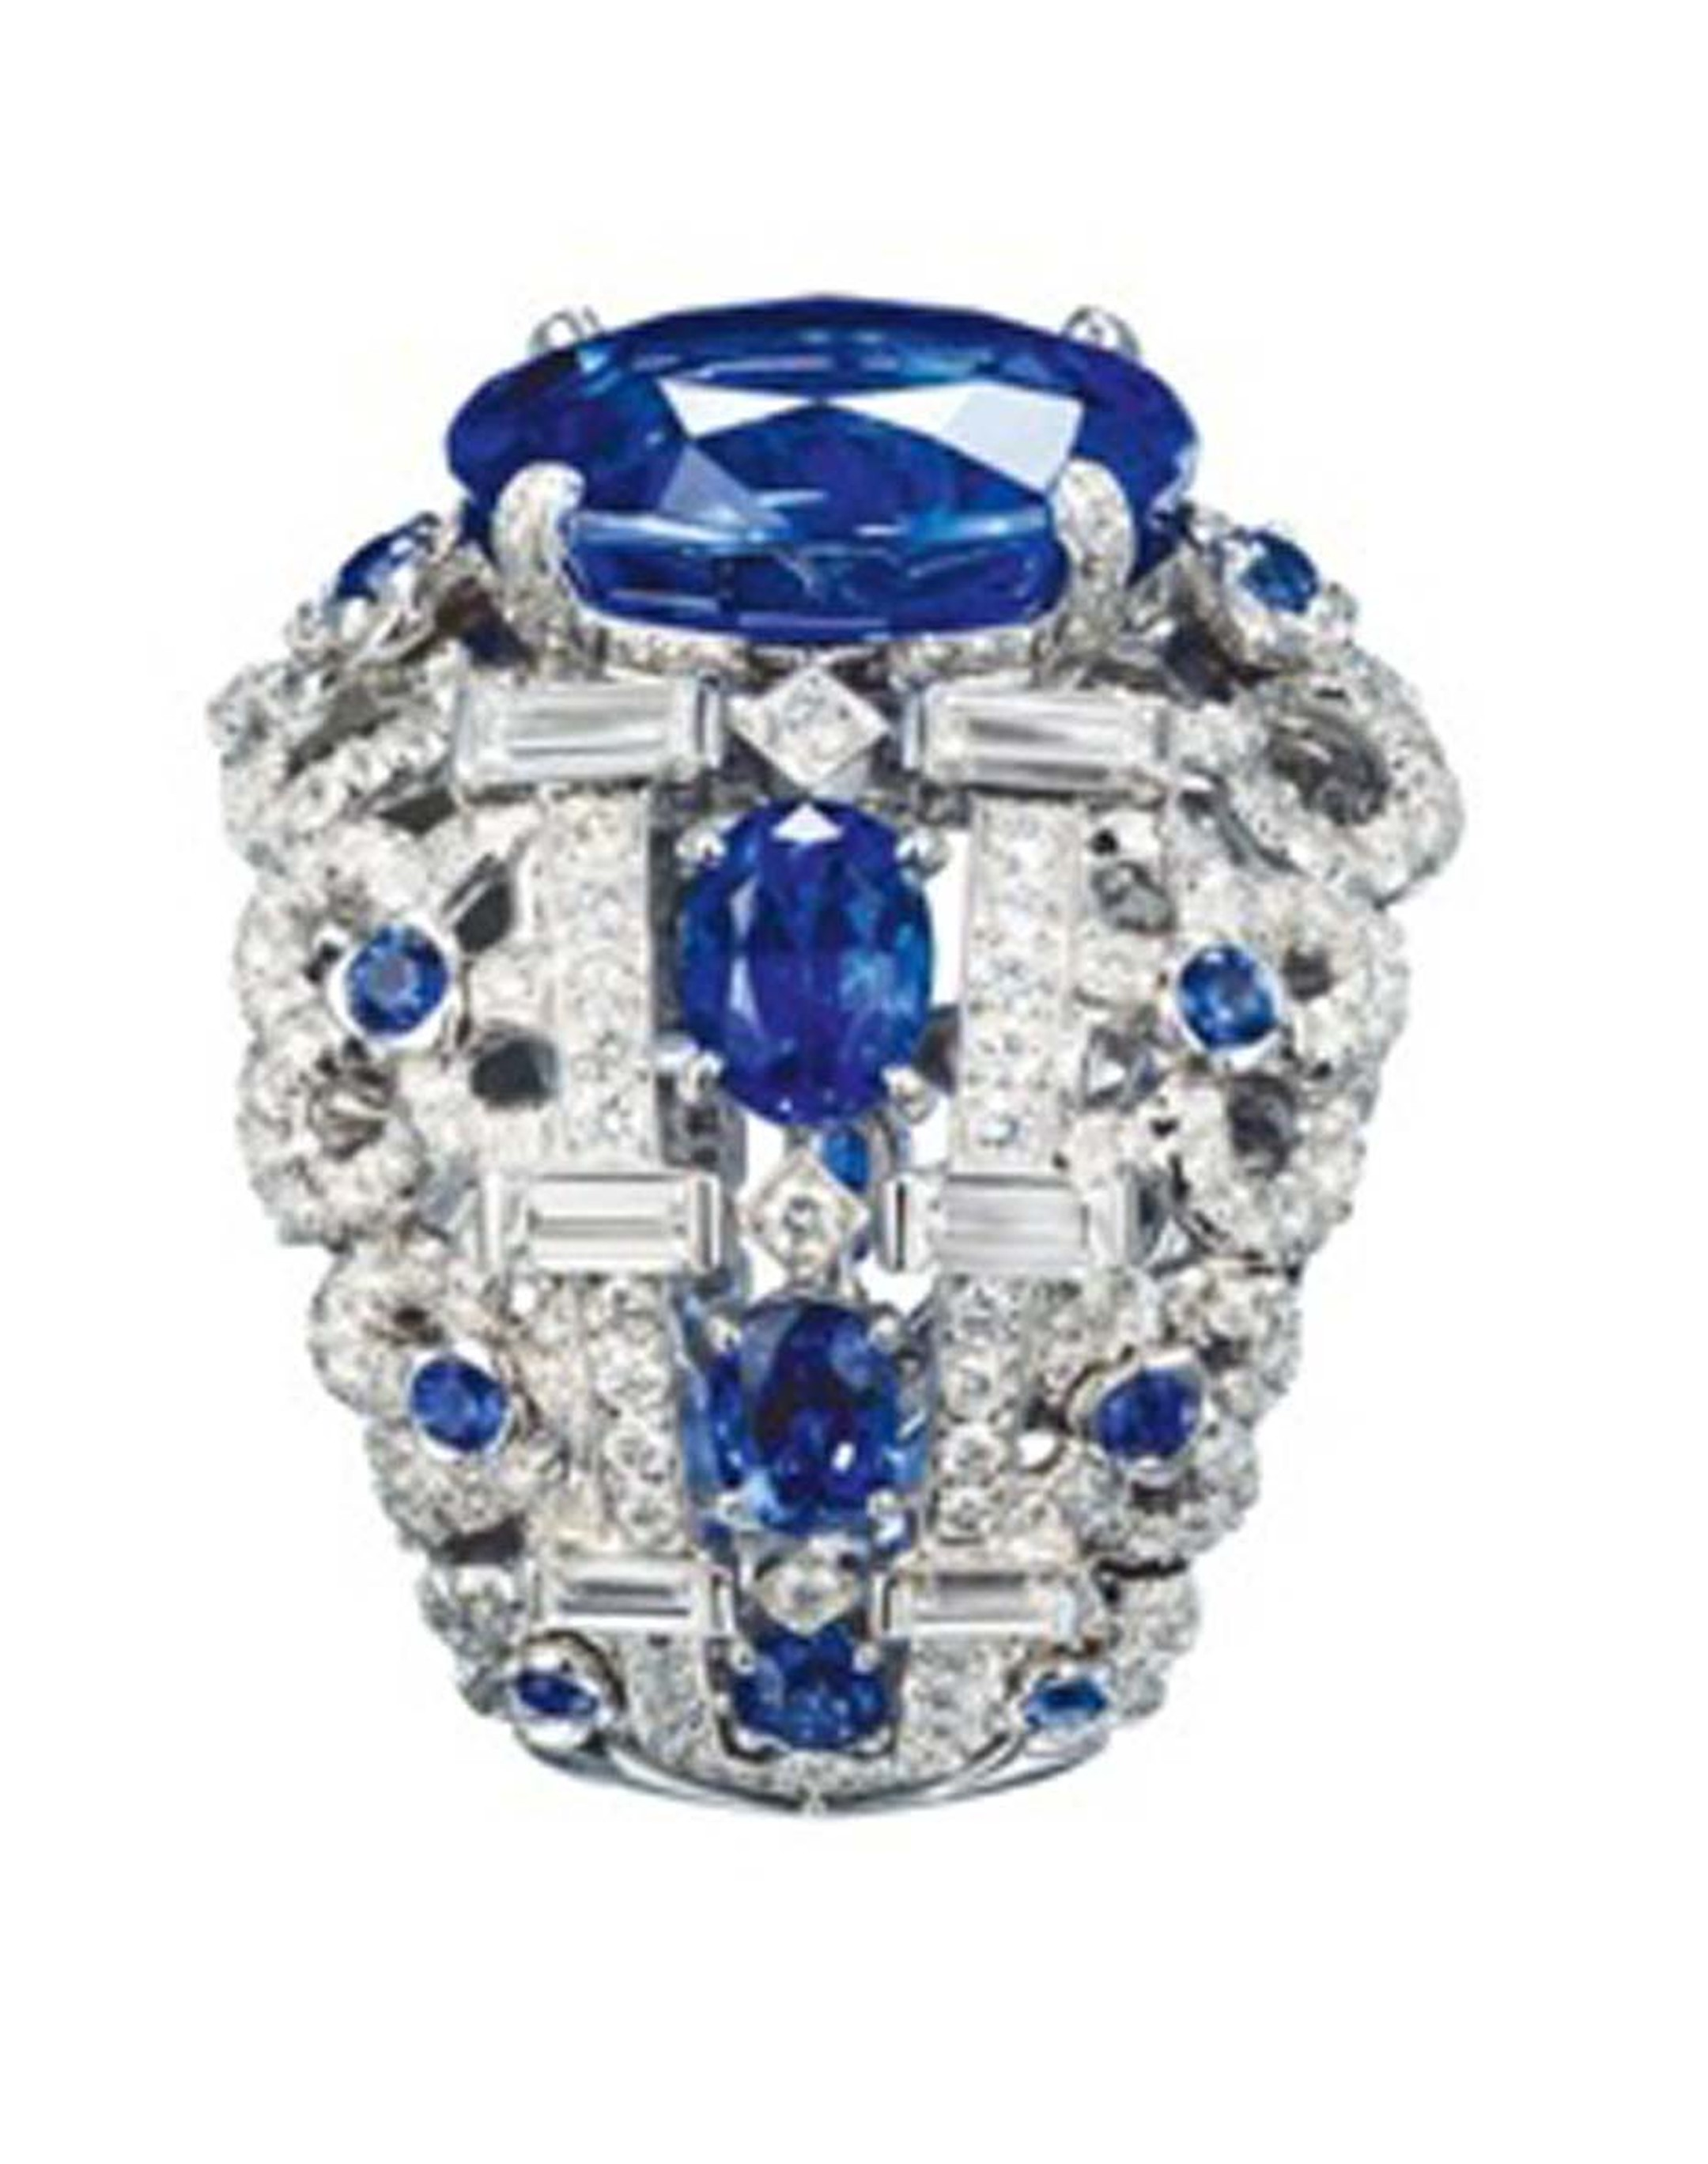 Chaumet Hortensia white gold ring with diamonds, sapphires and a centre oval-cut sapphire.